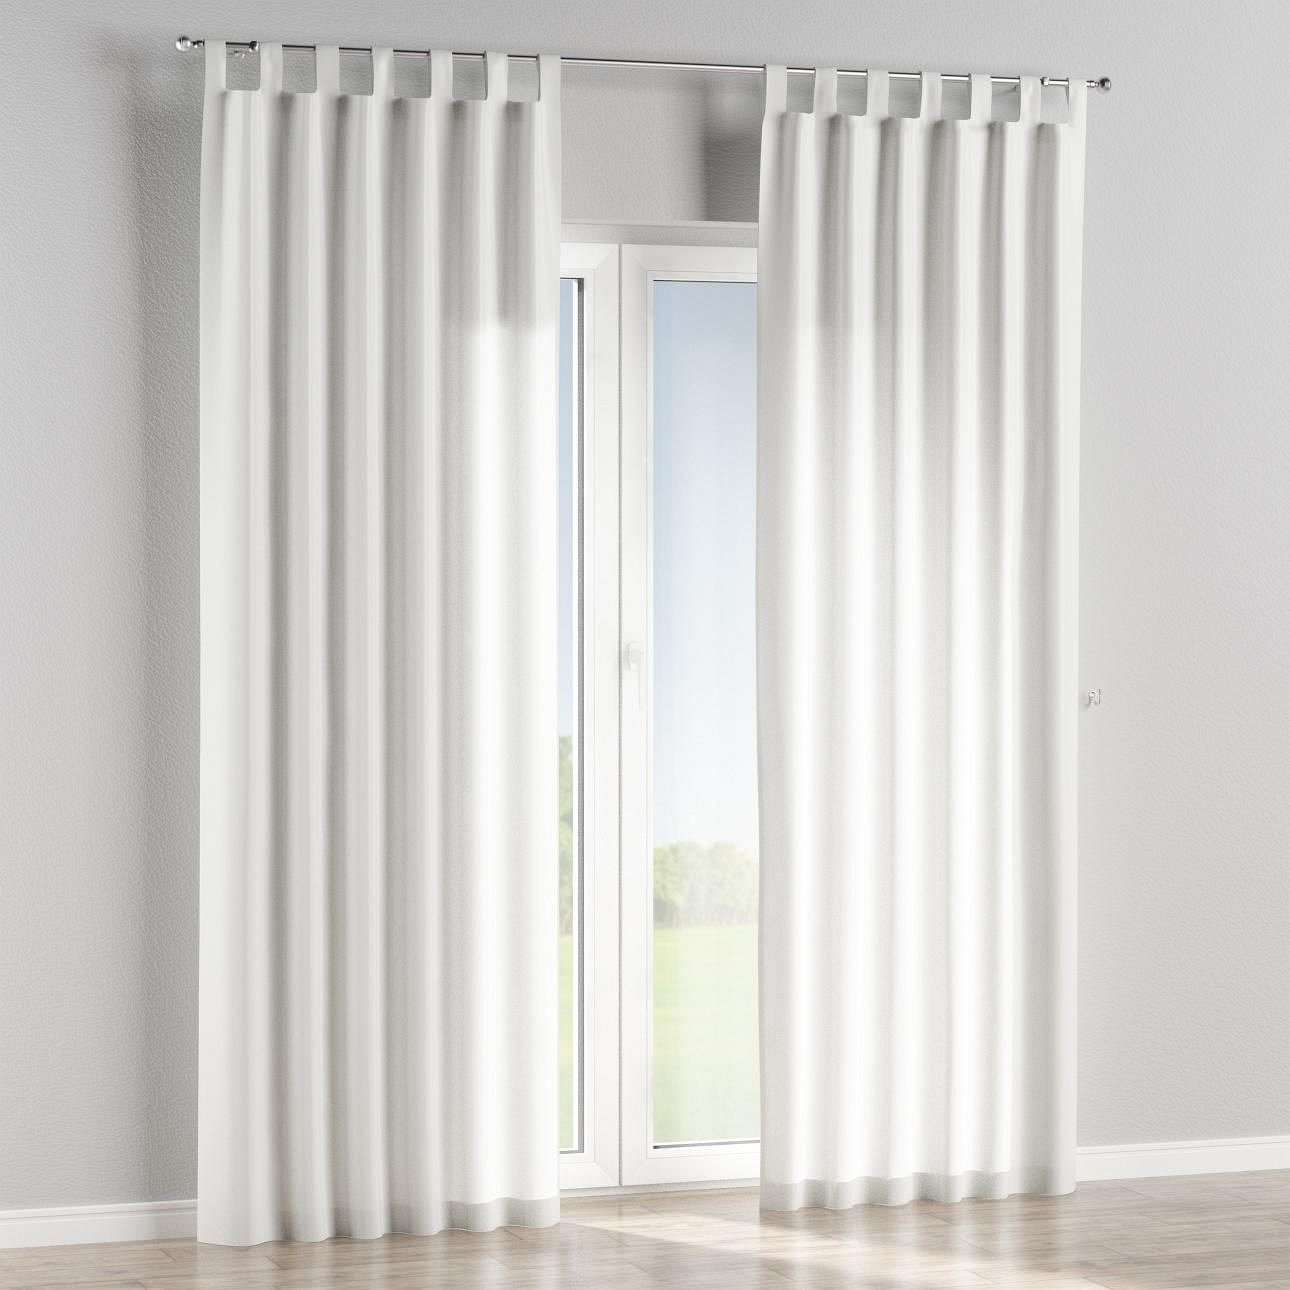 Tab top curtains in collection New Art, fabric: 140-21